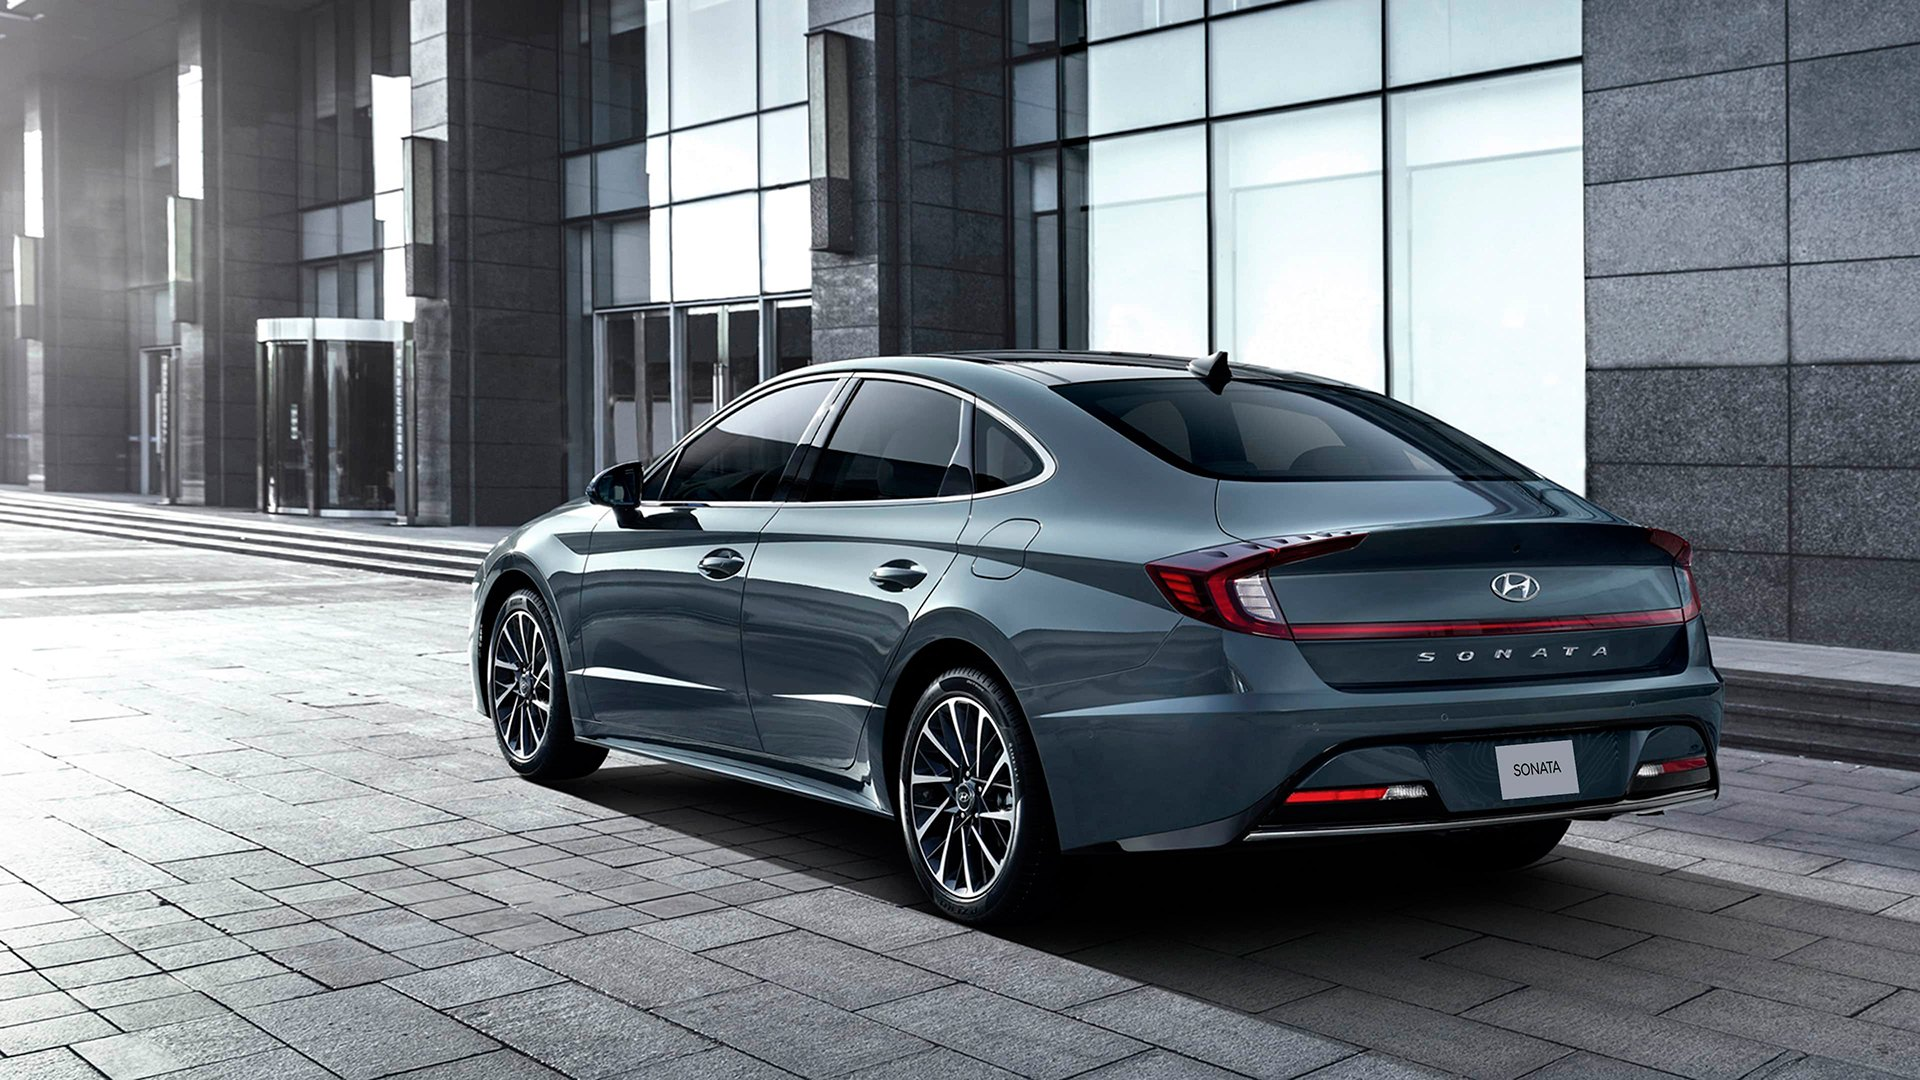 36 All New 2020 Hyundai Sonata Build Prices